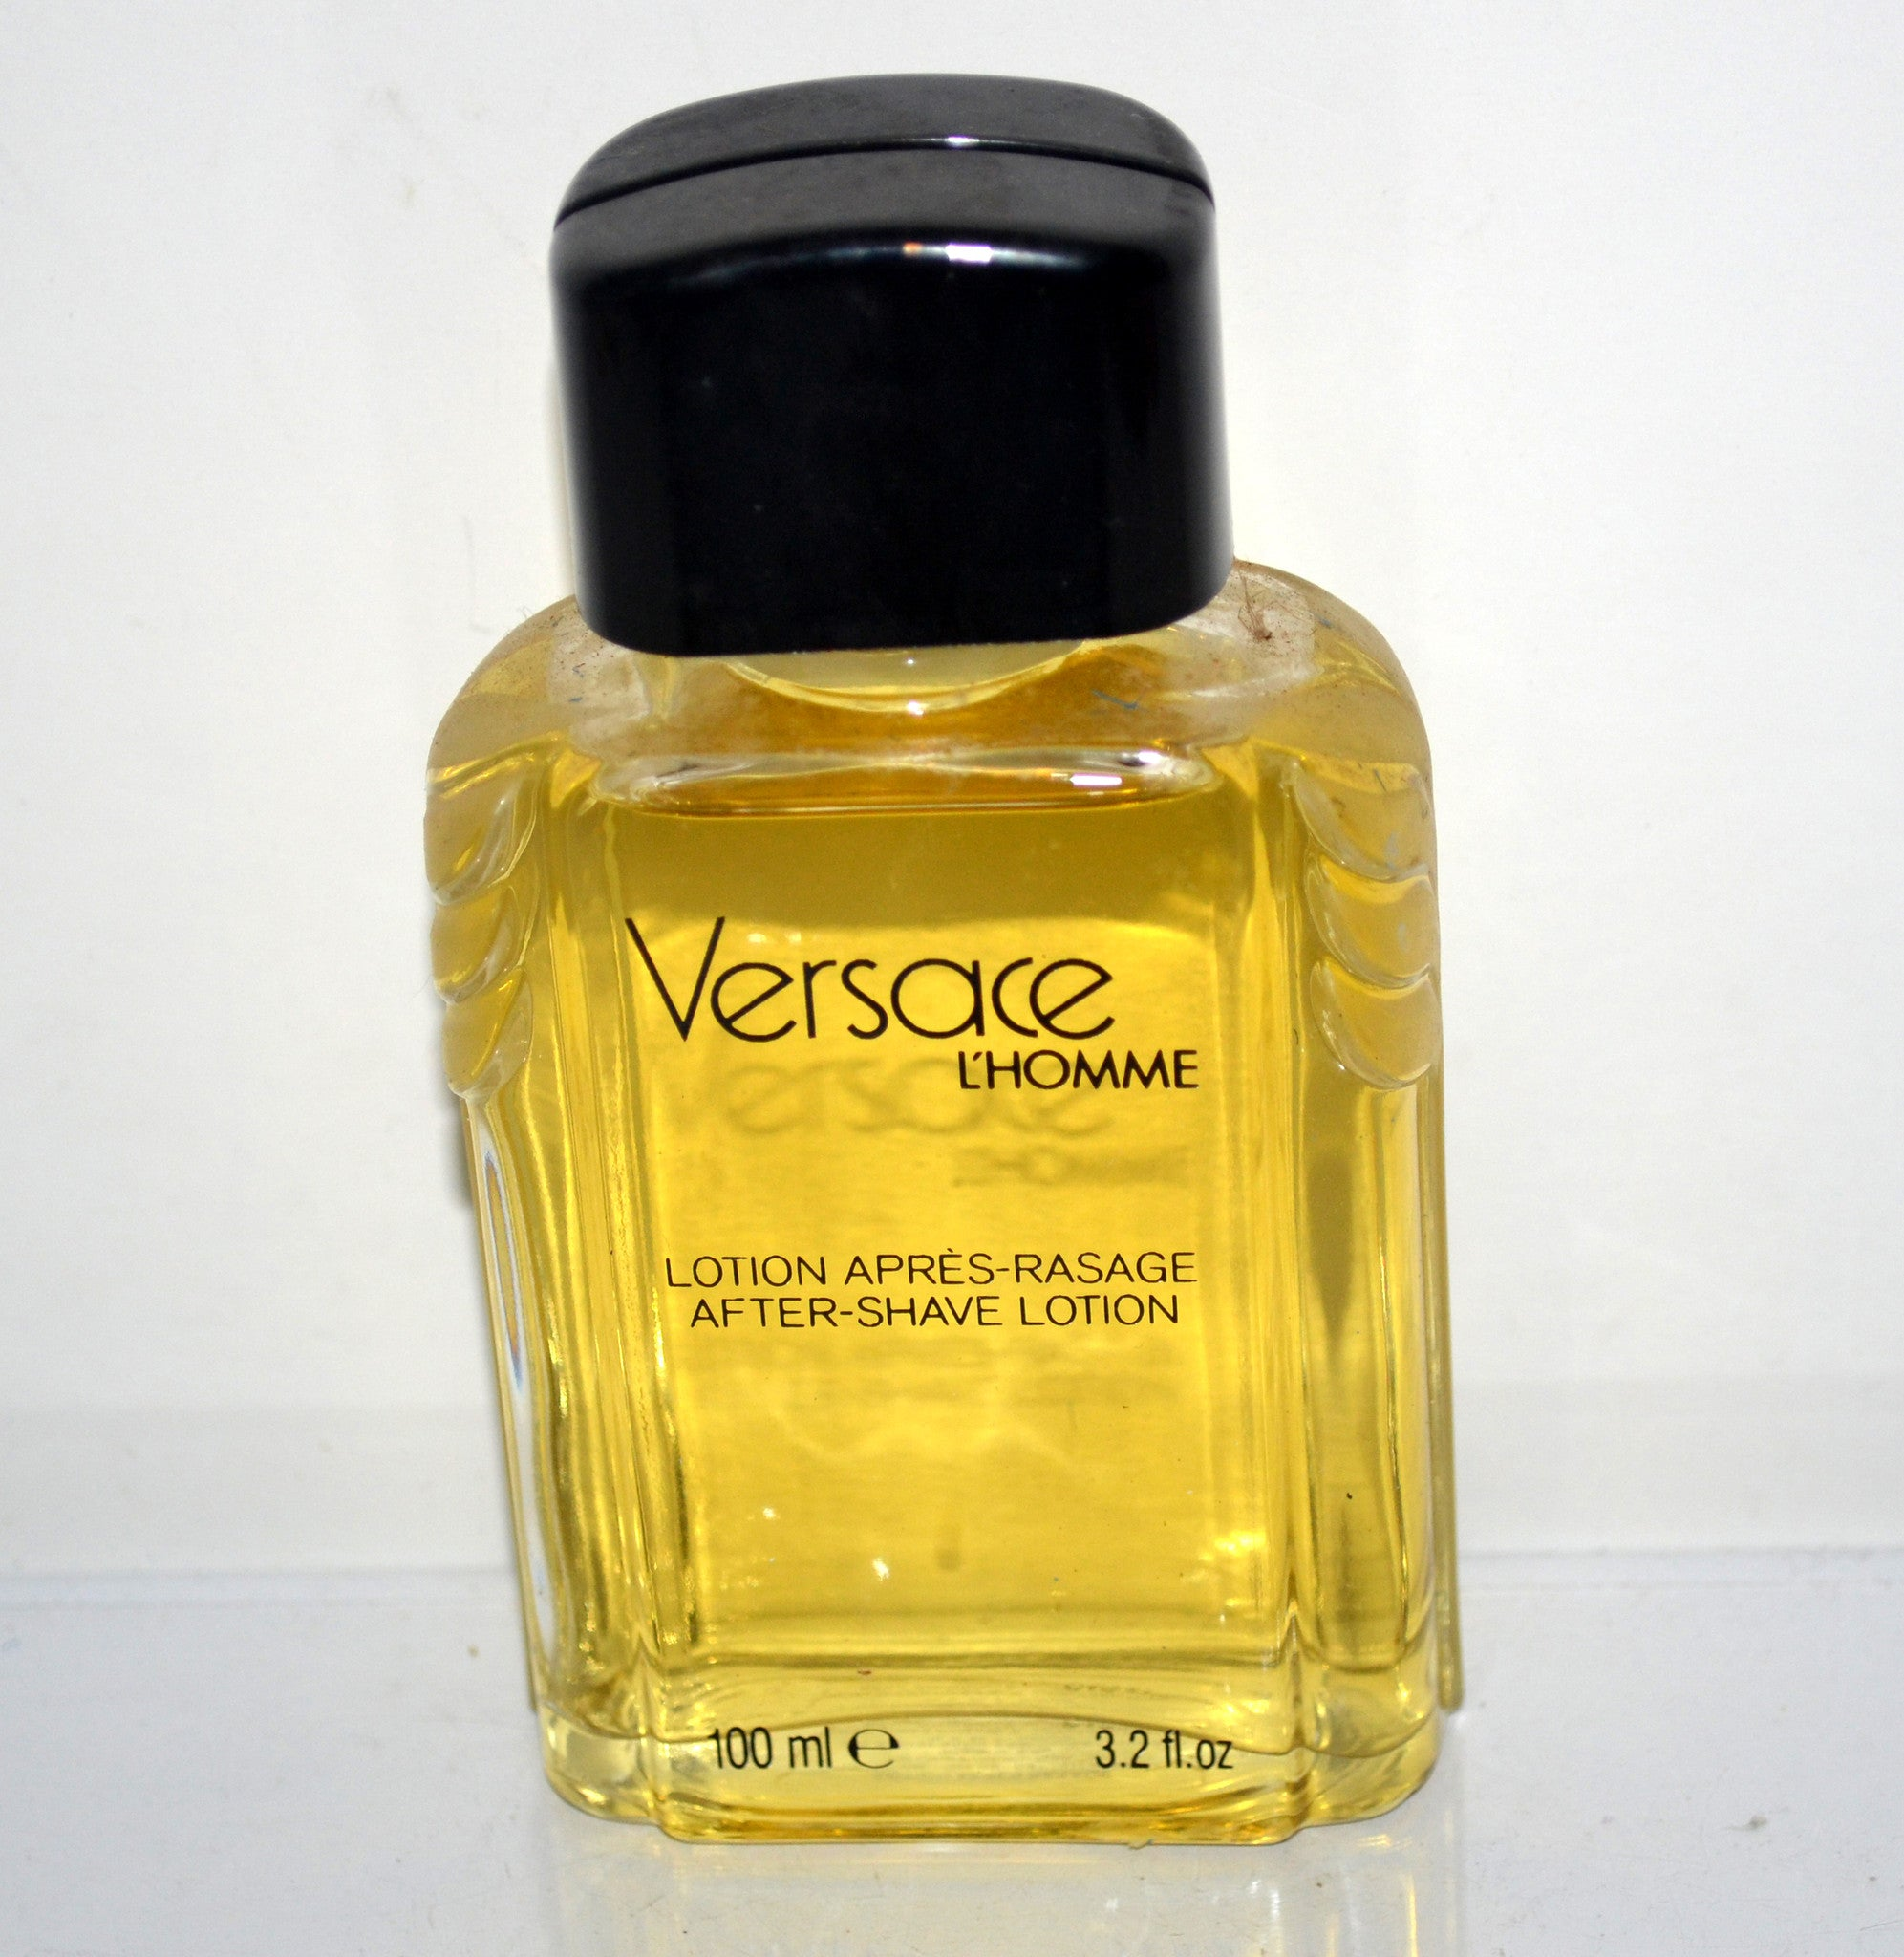 Versace L'Homme After Shave Lotion